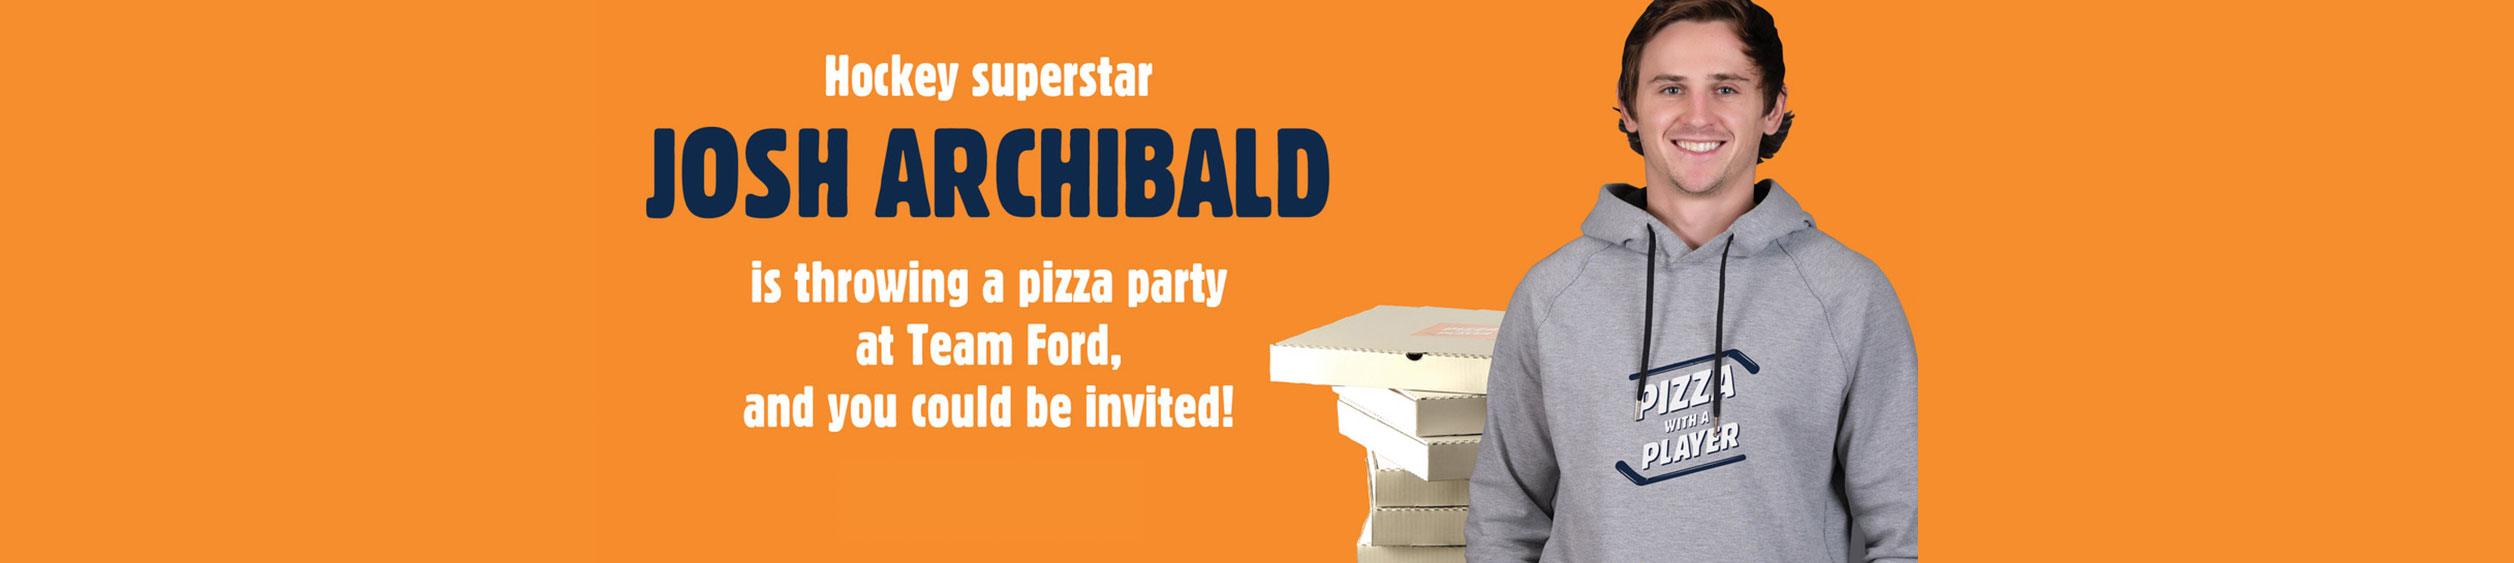 Your Minor Hockey Team Could Win a Pizza Party with JOSH ARCHIBALD!